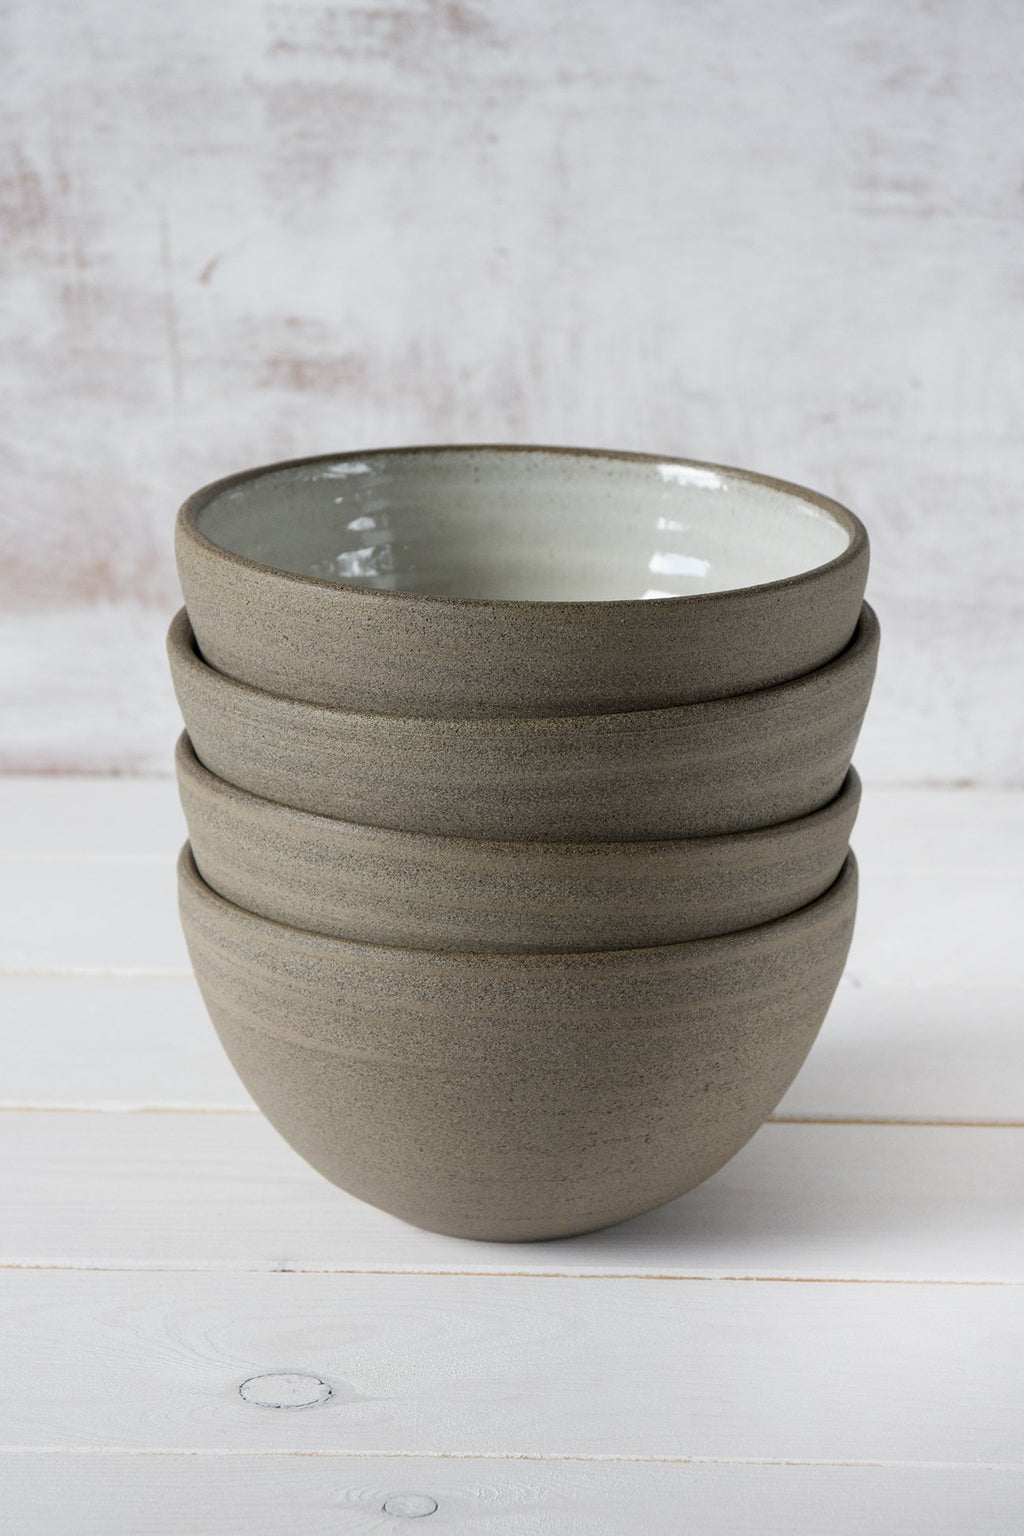 Rustic Soup Bowls, Set of 4 - Mad About Pottery- Bowl